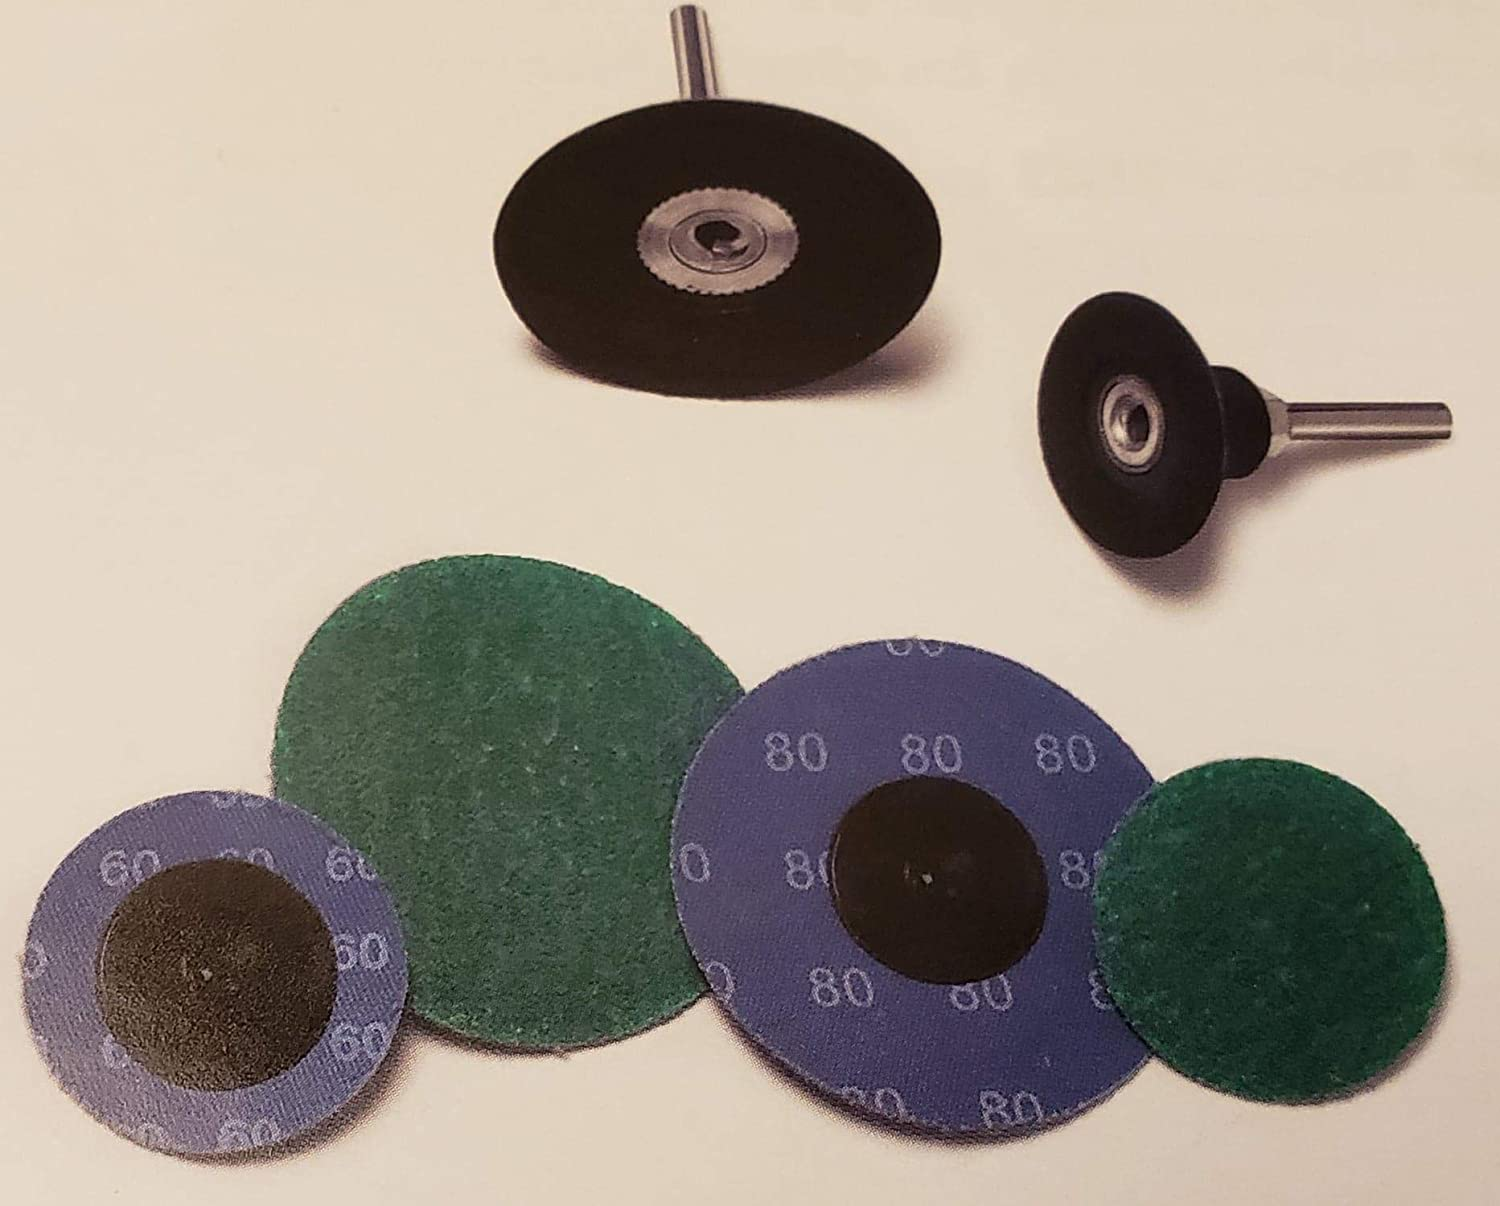 Plastic Button Quick Change Discs 80 Grit 25 Pack Random Products Inc 2 Green Zirconia with Grinding Aid Type R